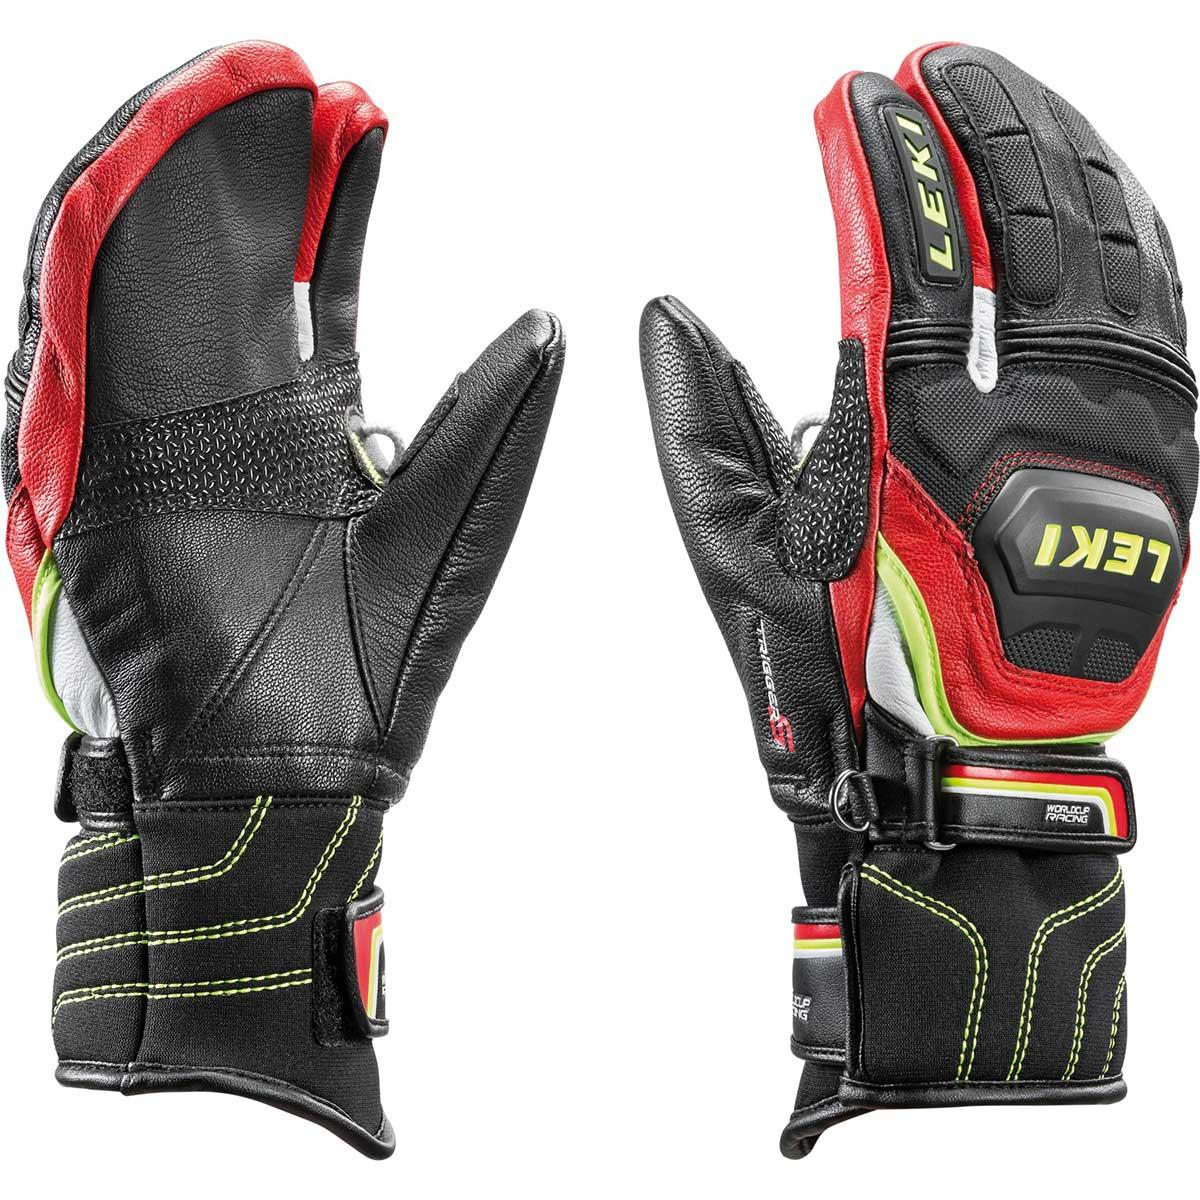 Leki Worldcup Race Flex S JR Lobster glove in black and red and yellow